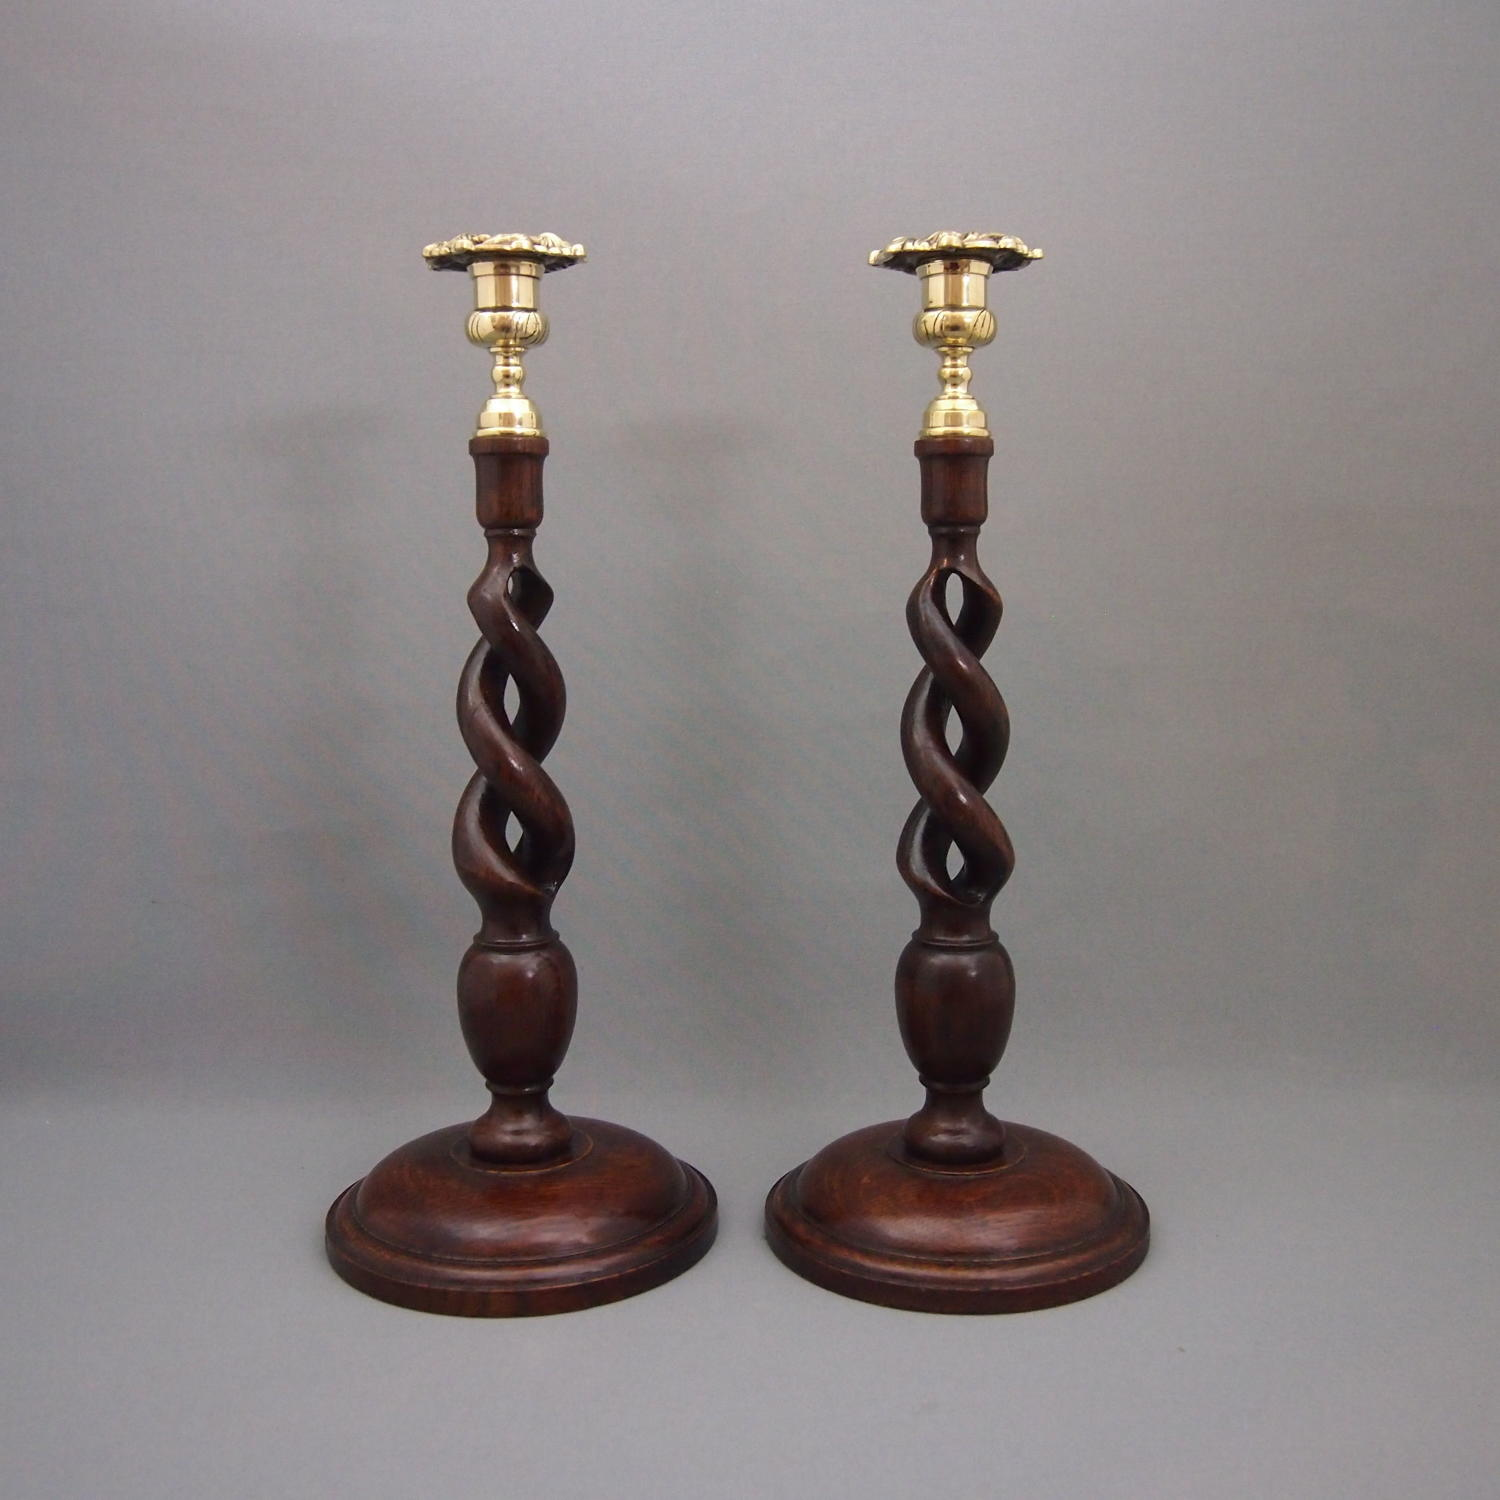 Pair of Tall Oak Open Twist Antique Candlesticks